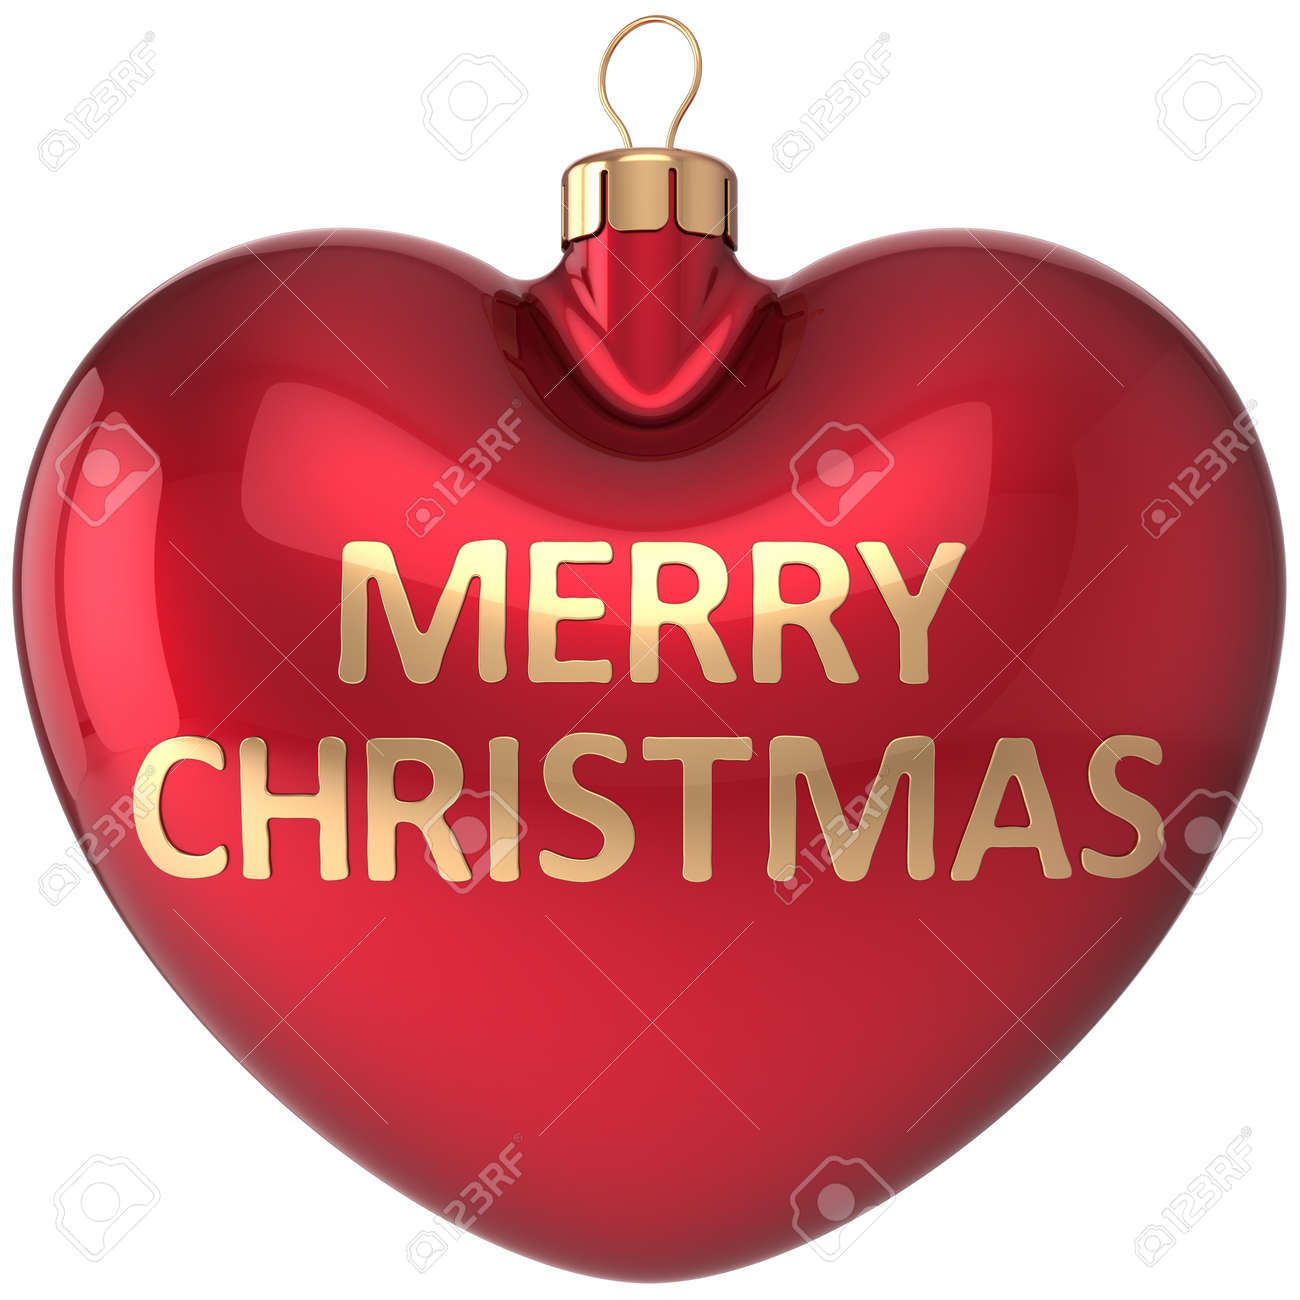 merry christmas heart love 6955187 - Merry Christmas With Love